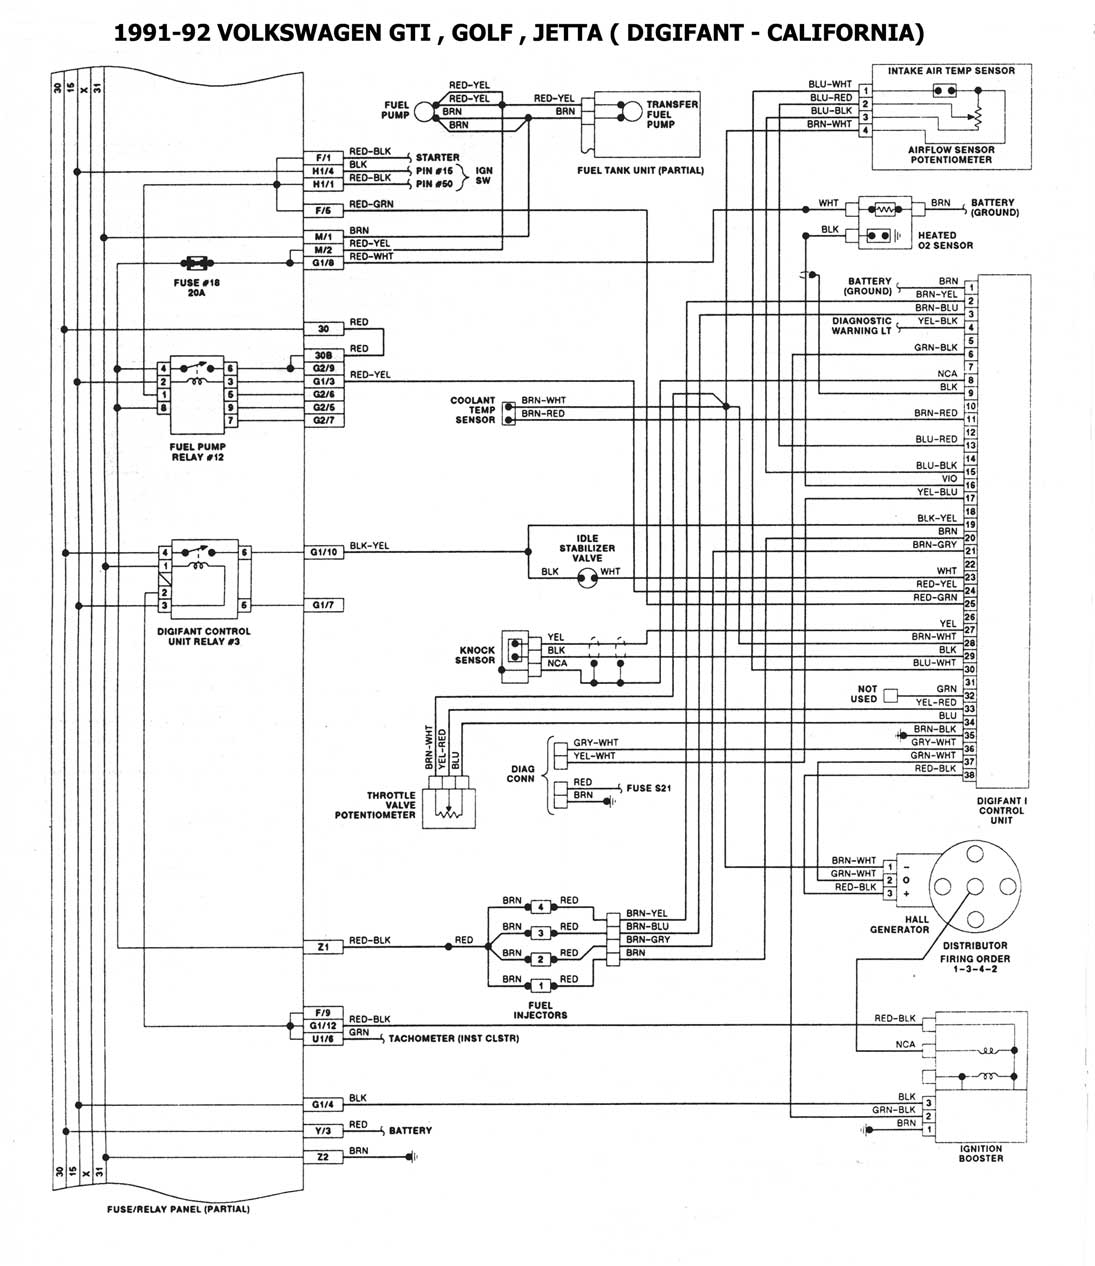 Scion Xb Fuse Box Diagram Manual Guide Wiring 2011 Xd 2012 Get Free Image About 2013